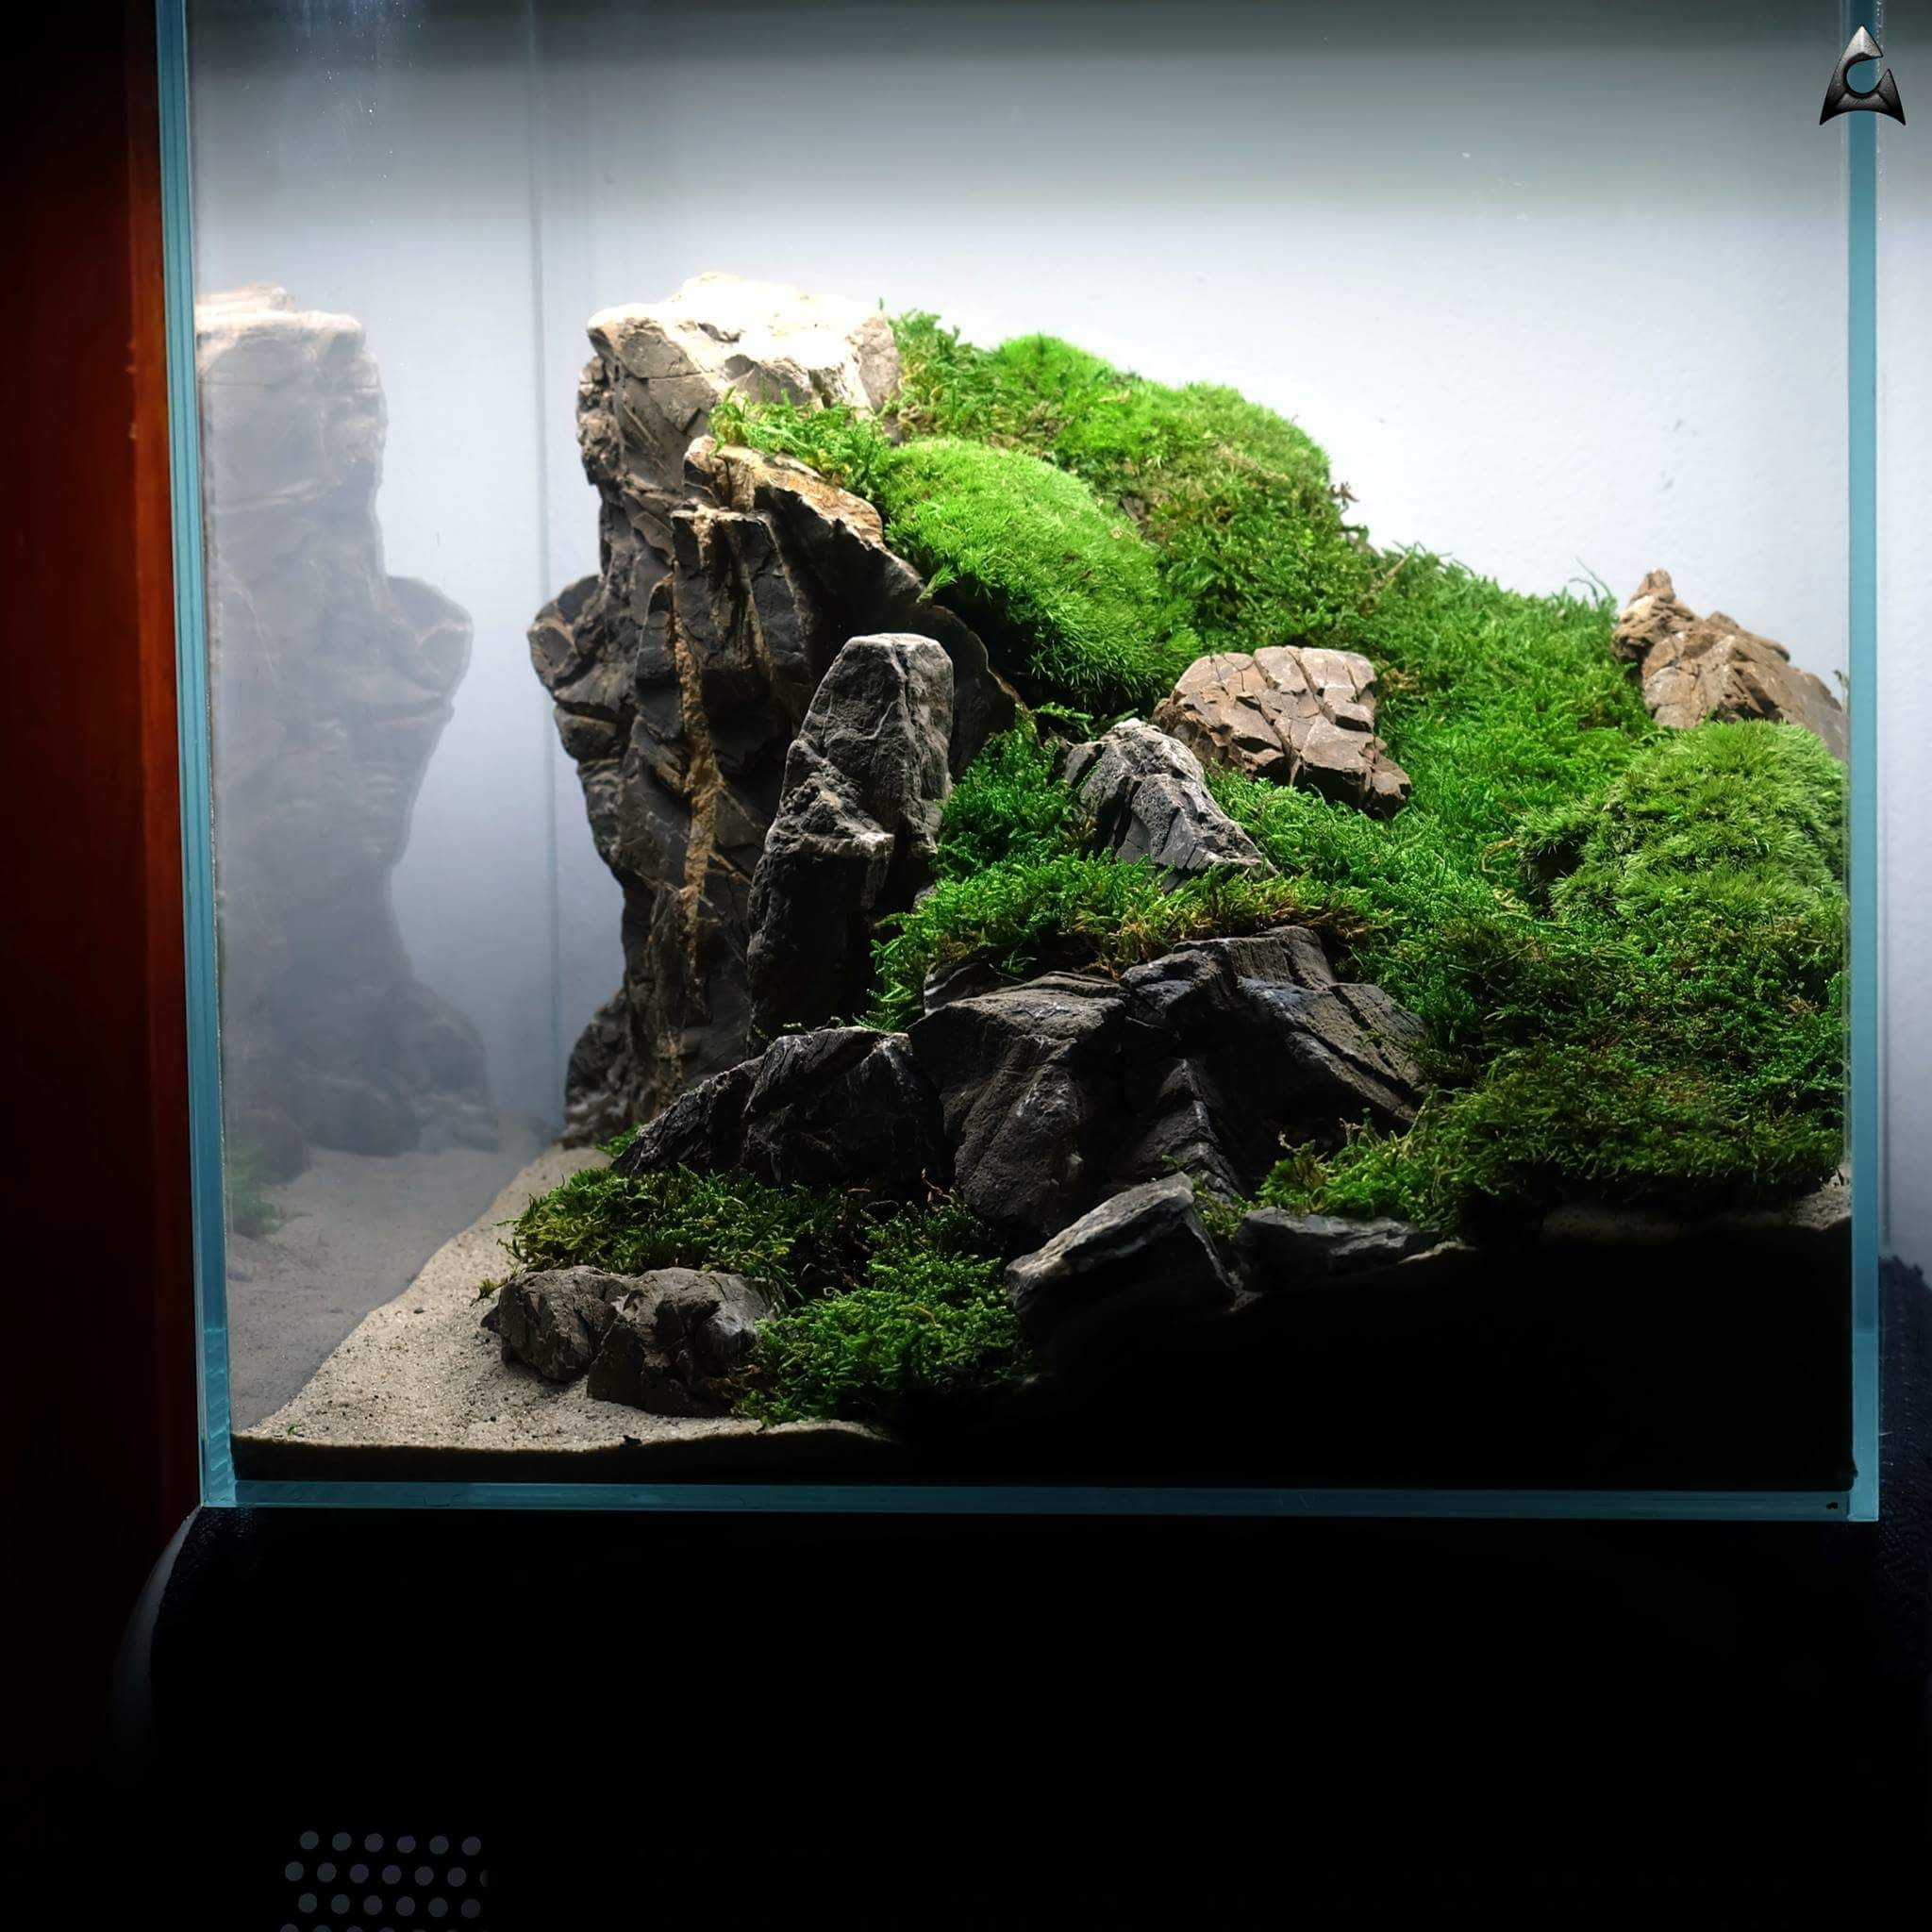 Diy Fish Tank Decorations Themes Aquascaping Fresh Water Decor Ideas Small Aquascaping Homemade Creative Aquascap Aquarium Landscape Aquascape Diy Fish Tank